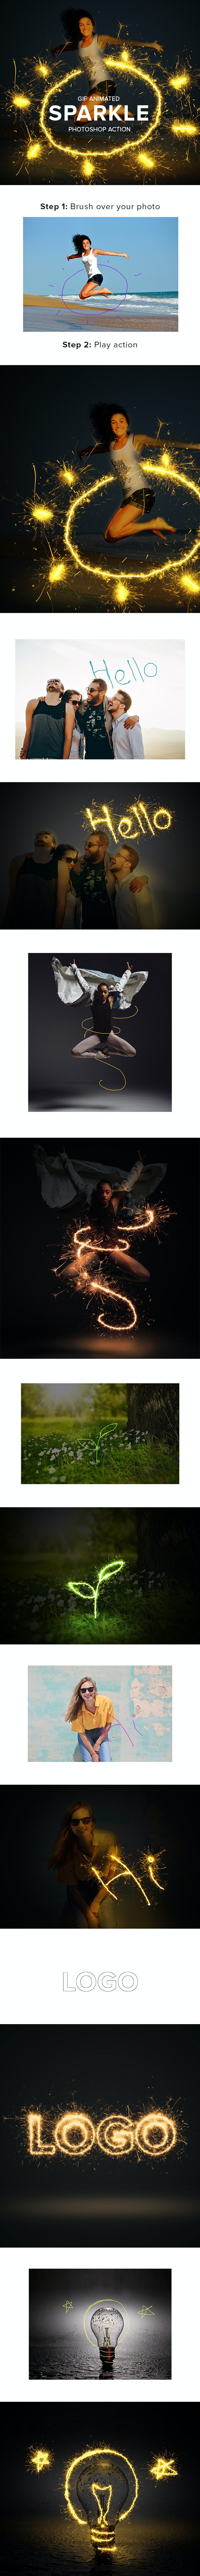 Gif Animated Sparkler Photoshop Action - Actions Photoshop